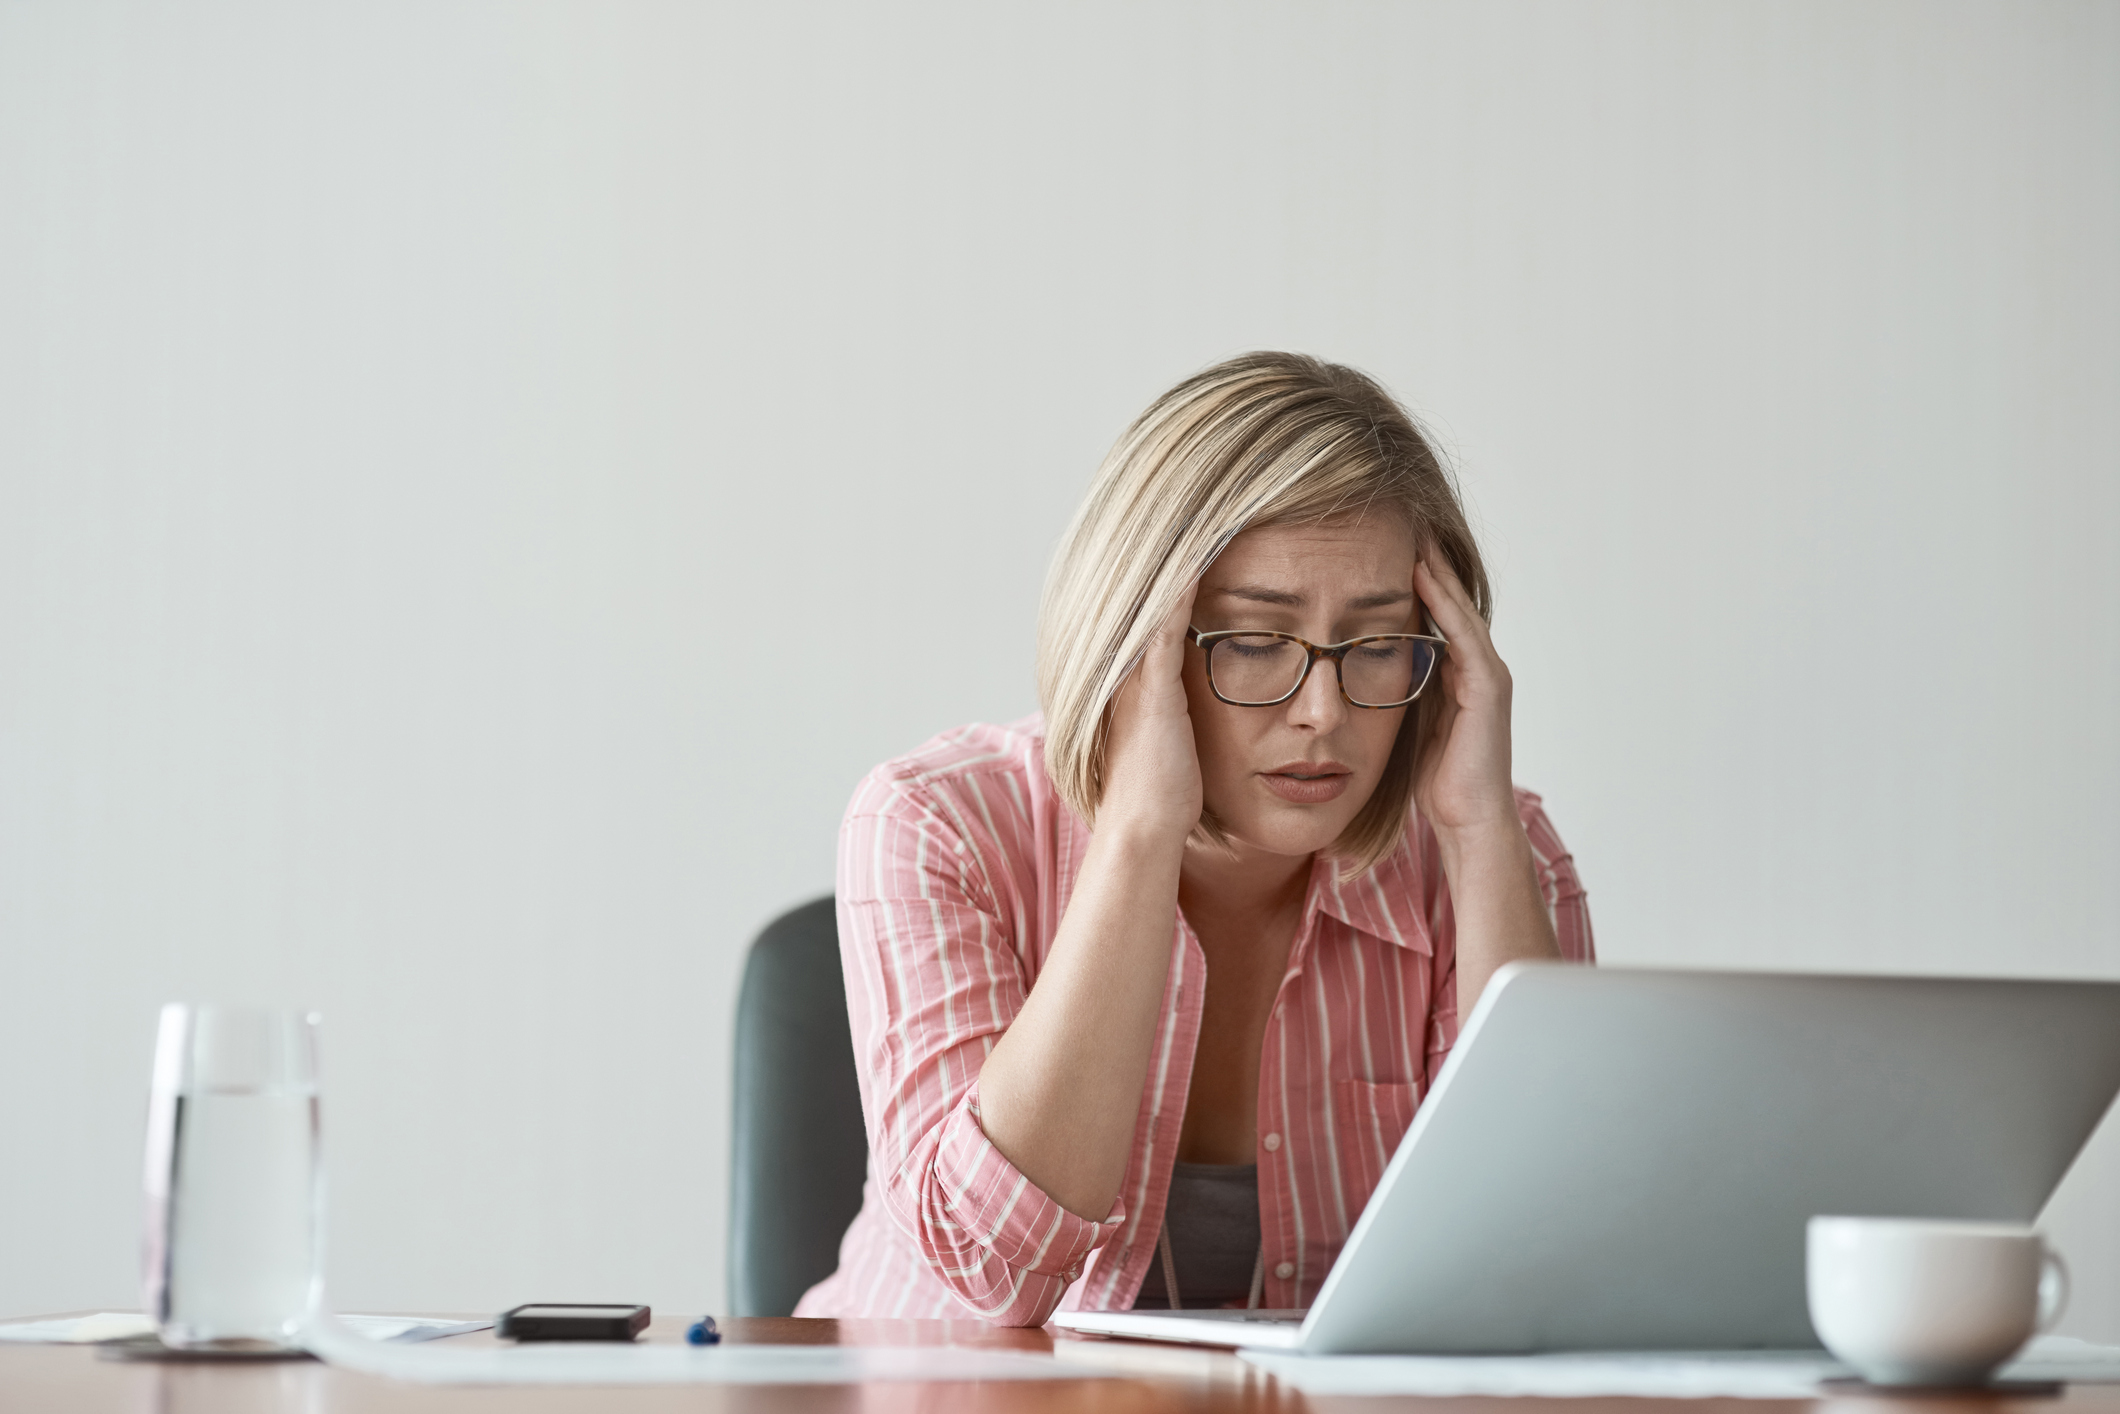 A woman appears to be stressed out as she works in front of her laptop. She is rubbing her temples and has her eyes closed.